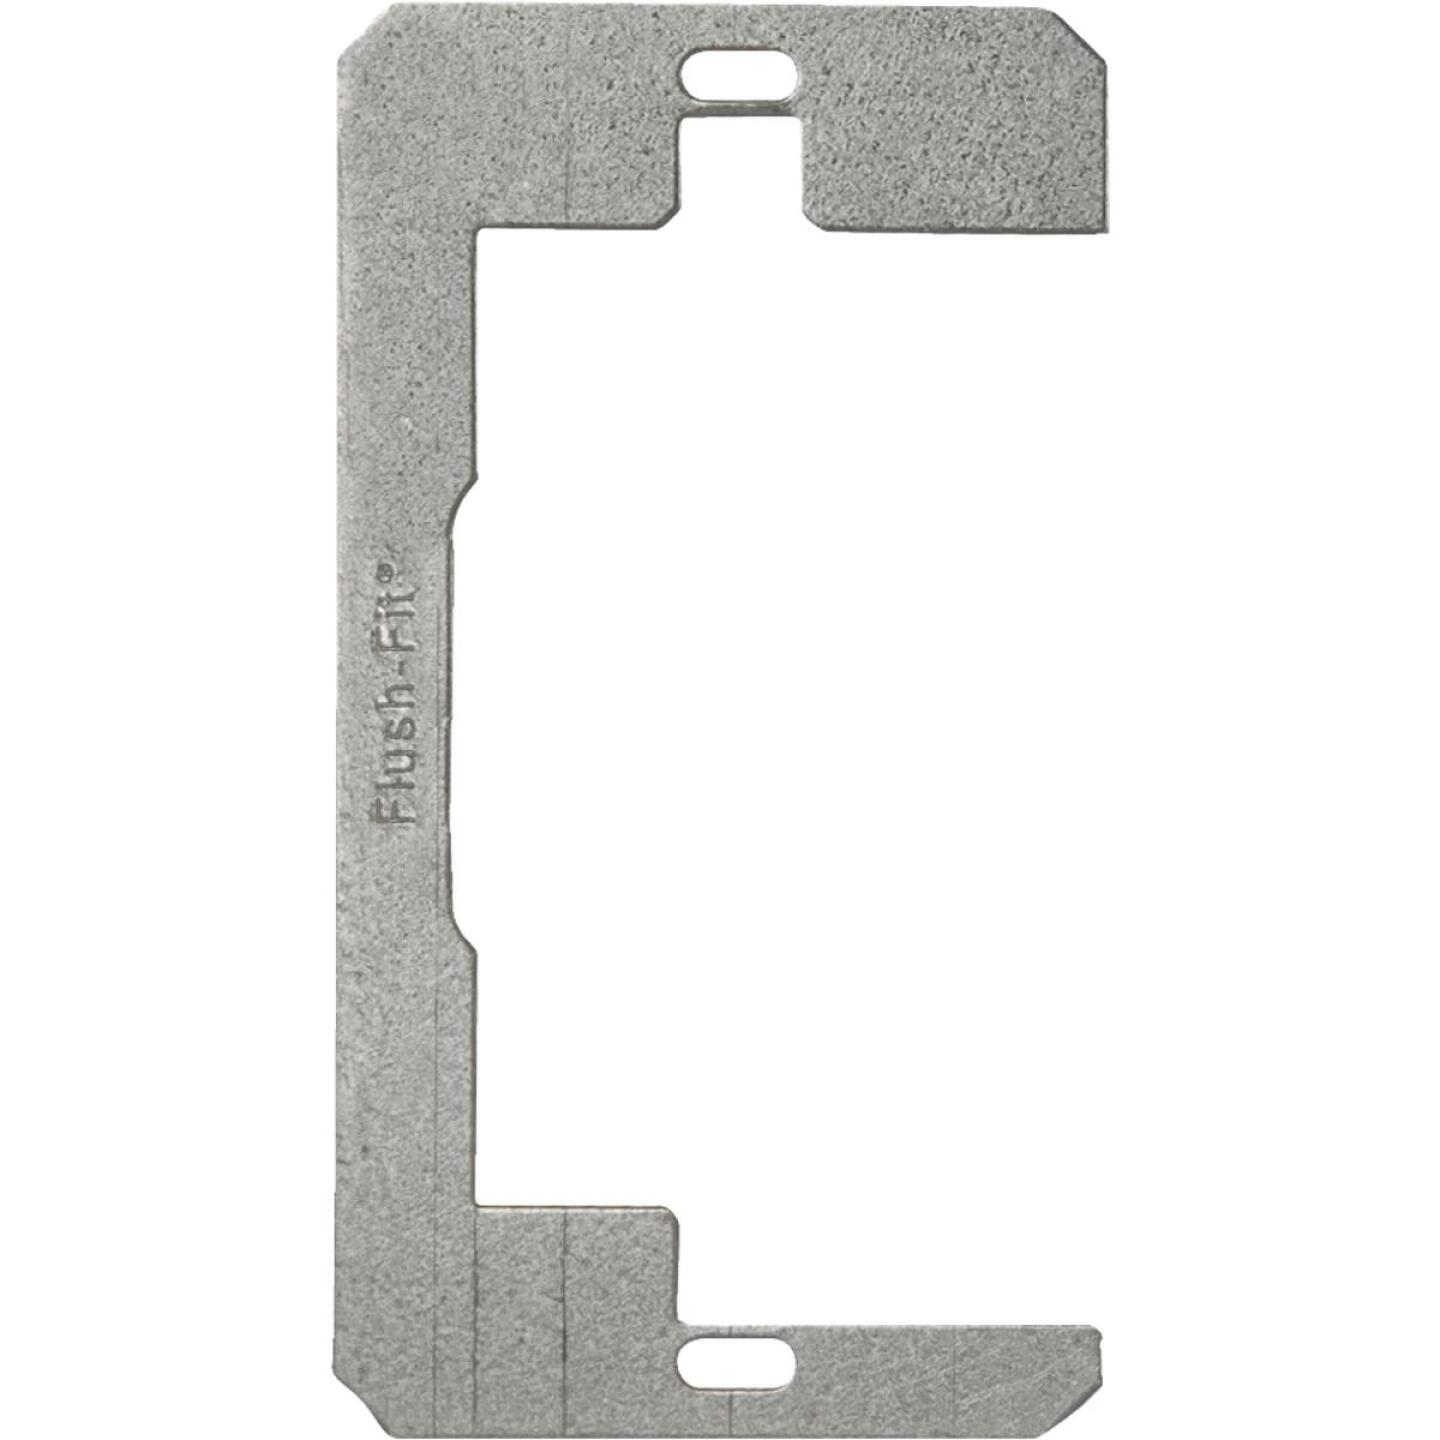 Hubbell Raco Metal 1-Gang Flush-Fit Device Leveling Plate (3-Pack) Image 1